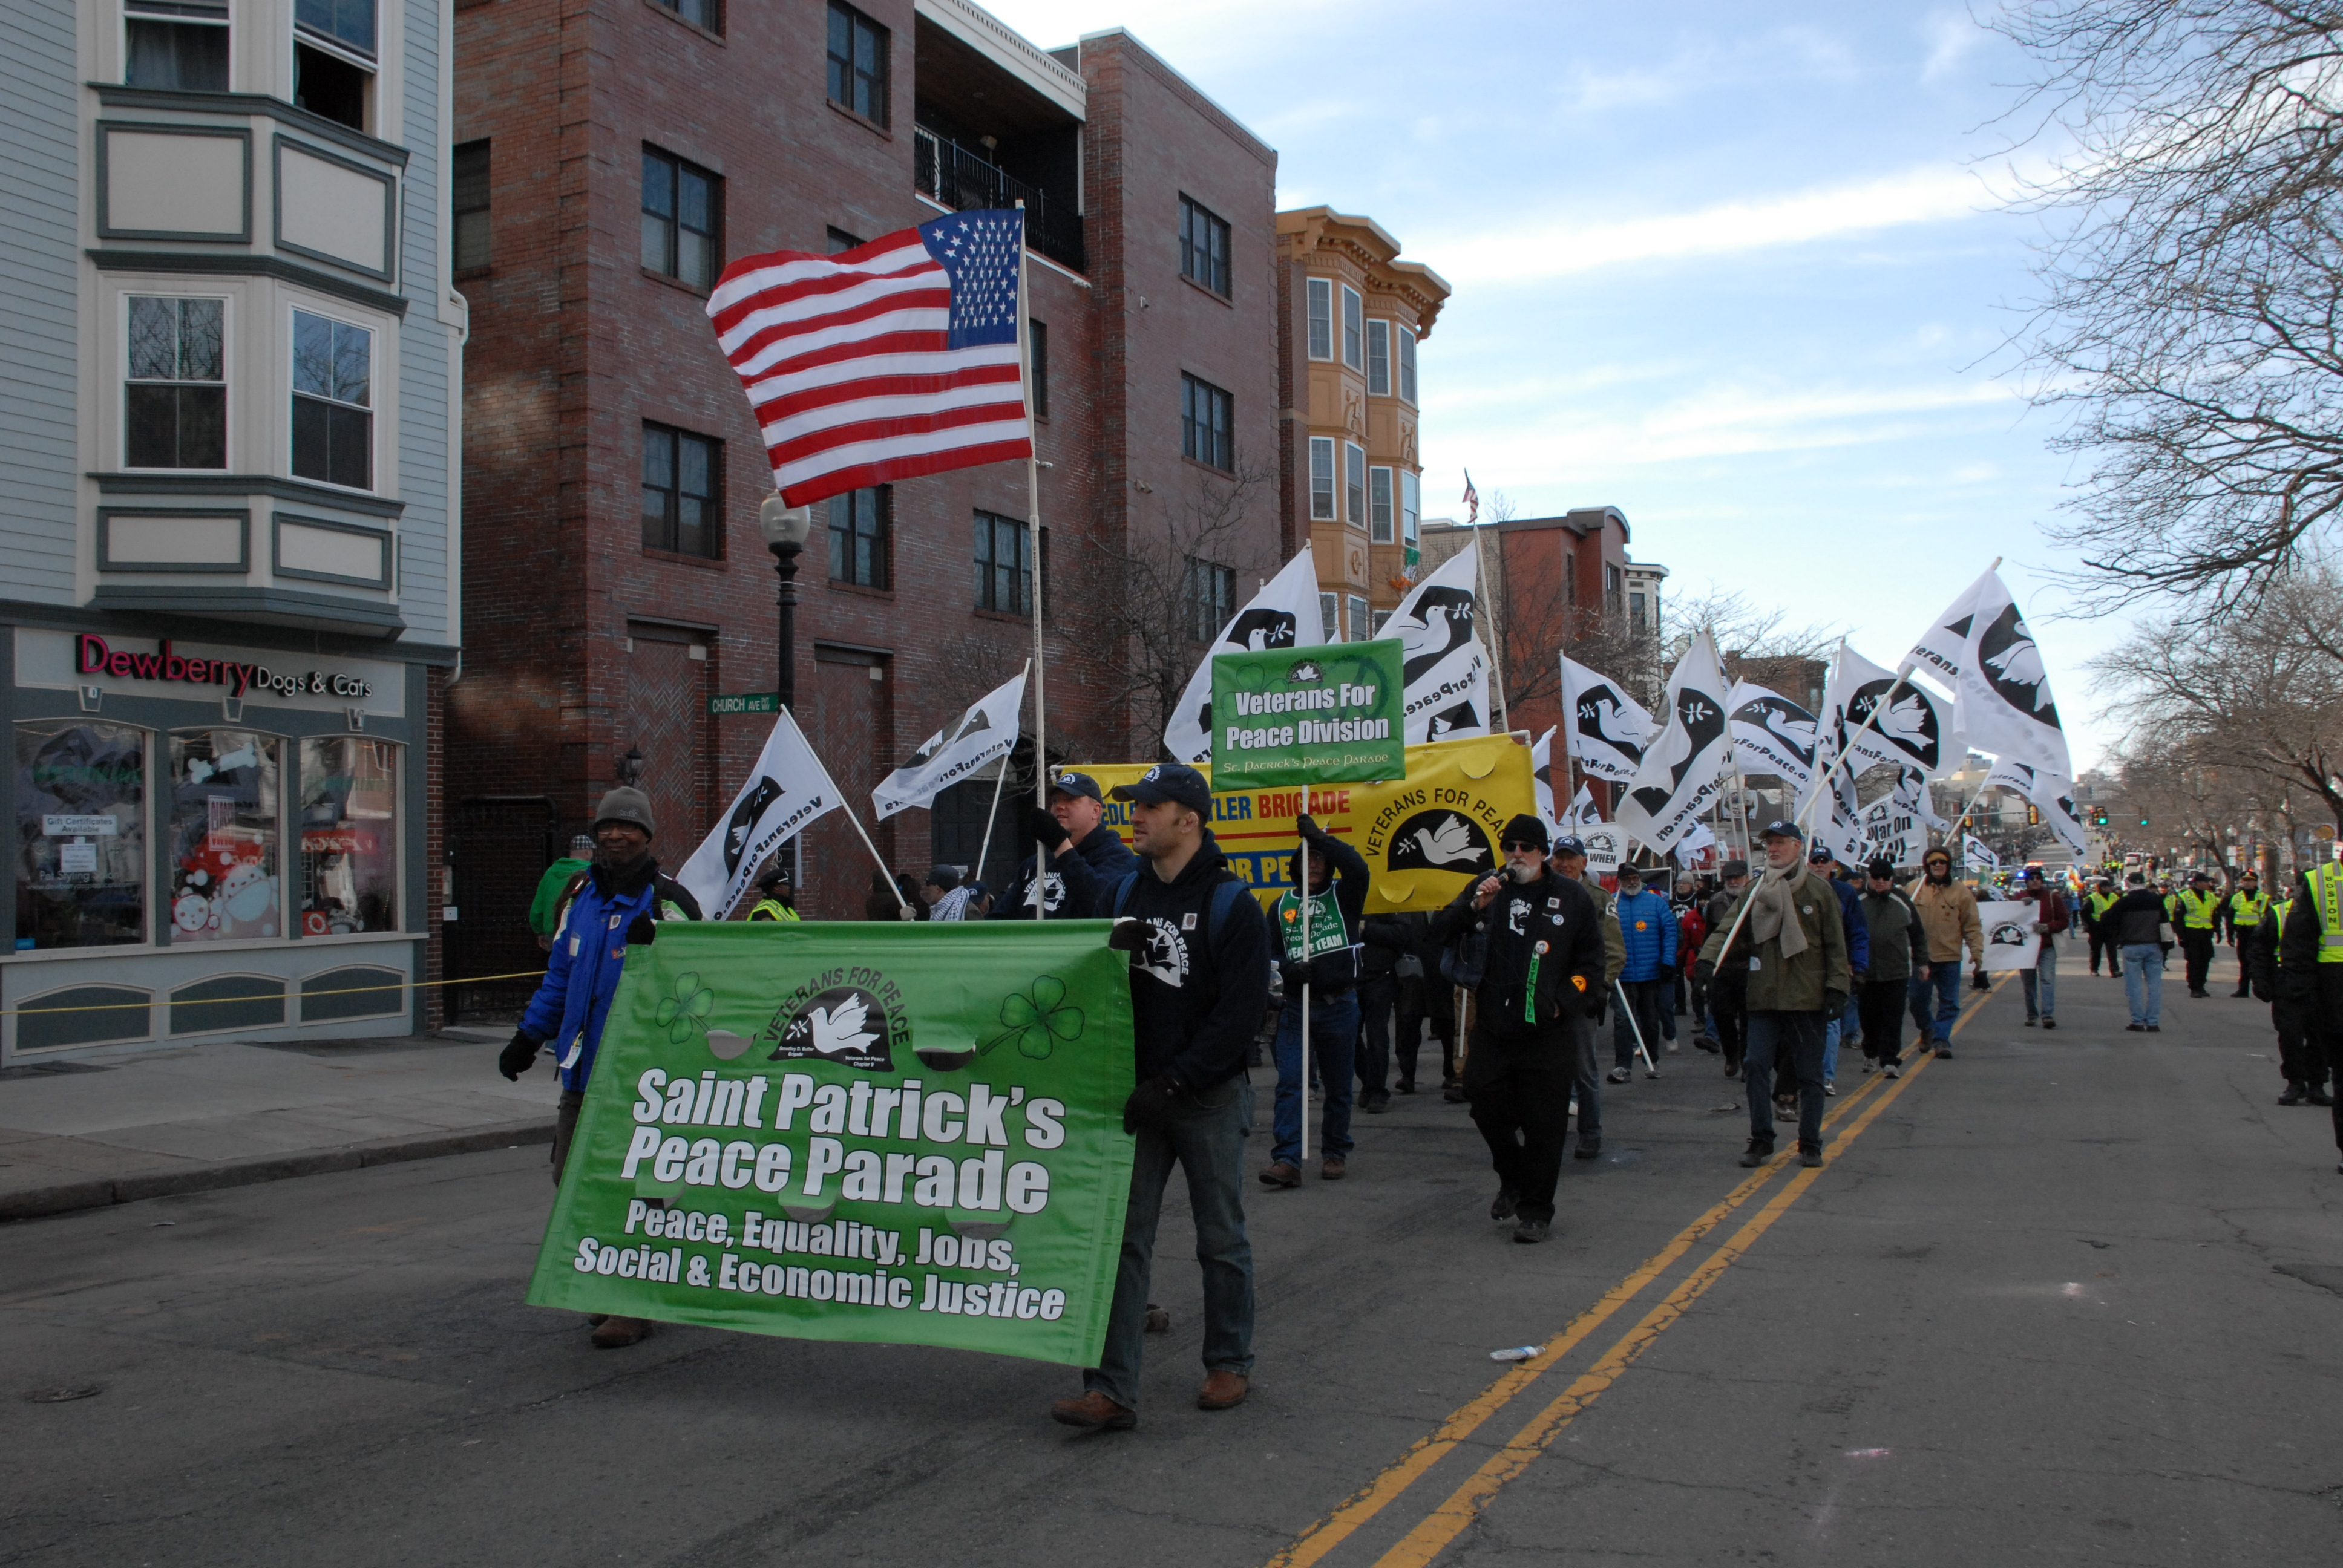 Saint Pat's Peace Parade